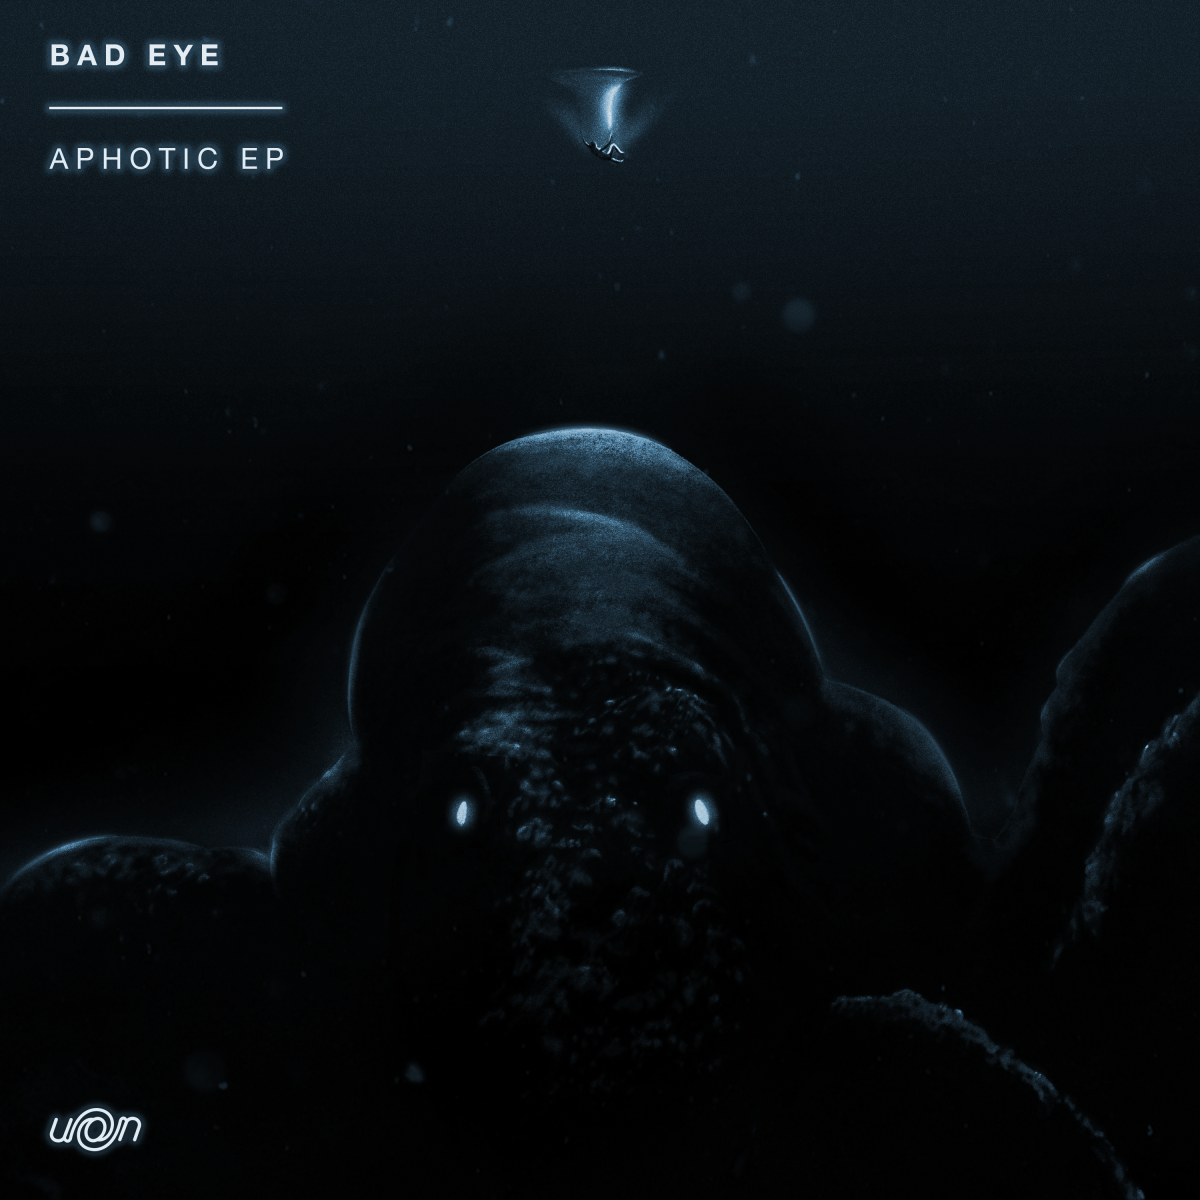 Bad Eye - One Who Is Many [Understated @ Nite]